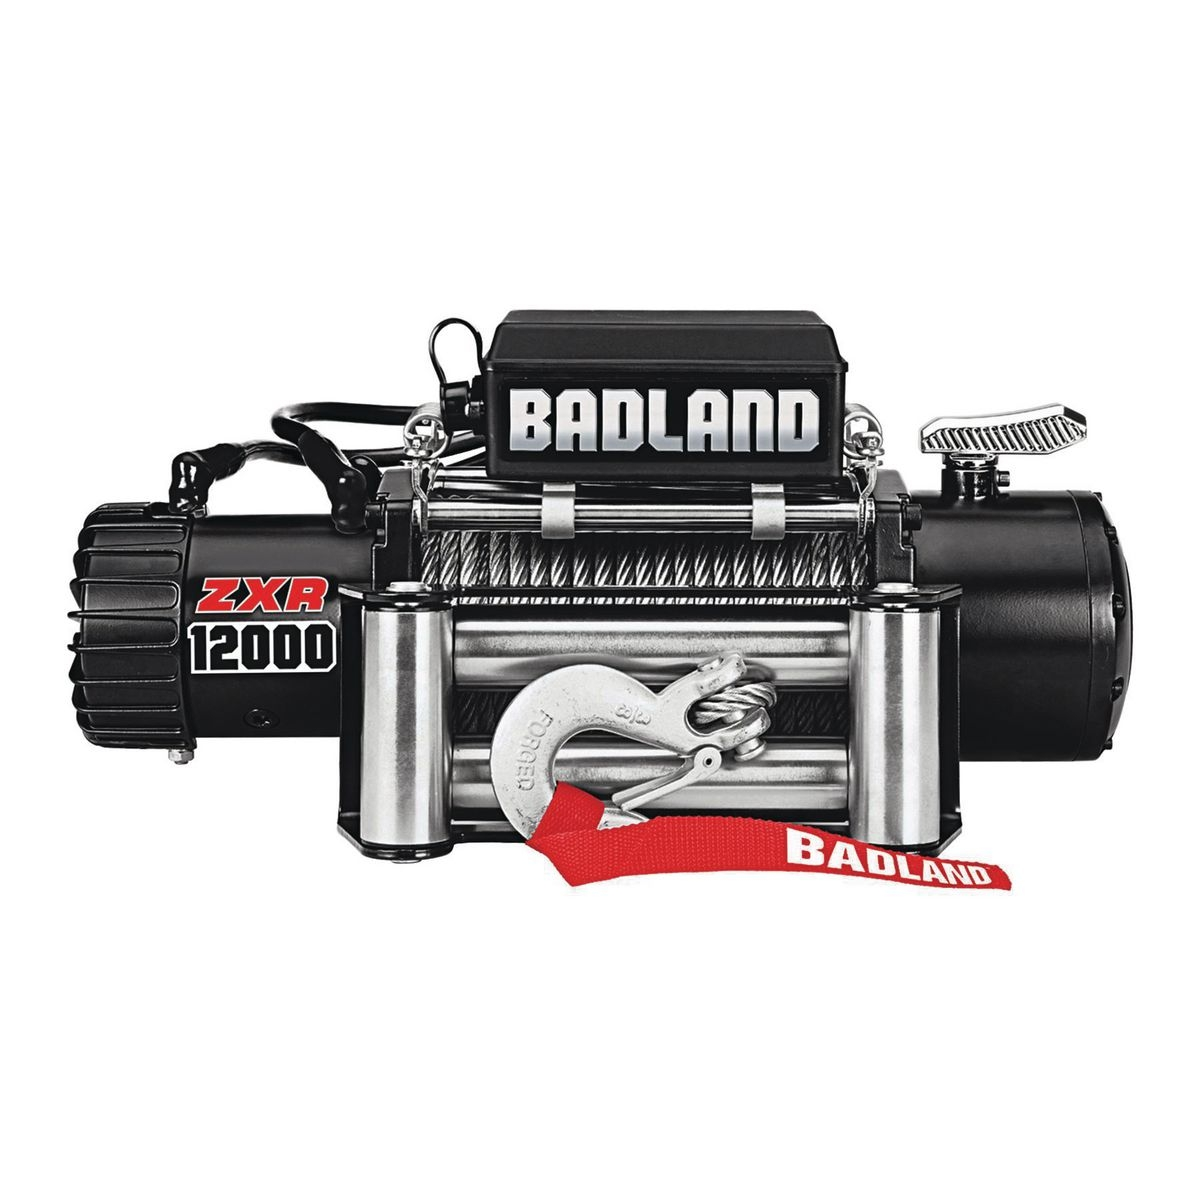 hight resolution of 12000 lbs off road vehicle electric winch with automatic load holding brake